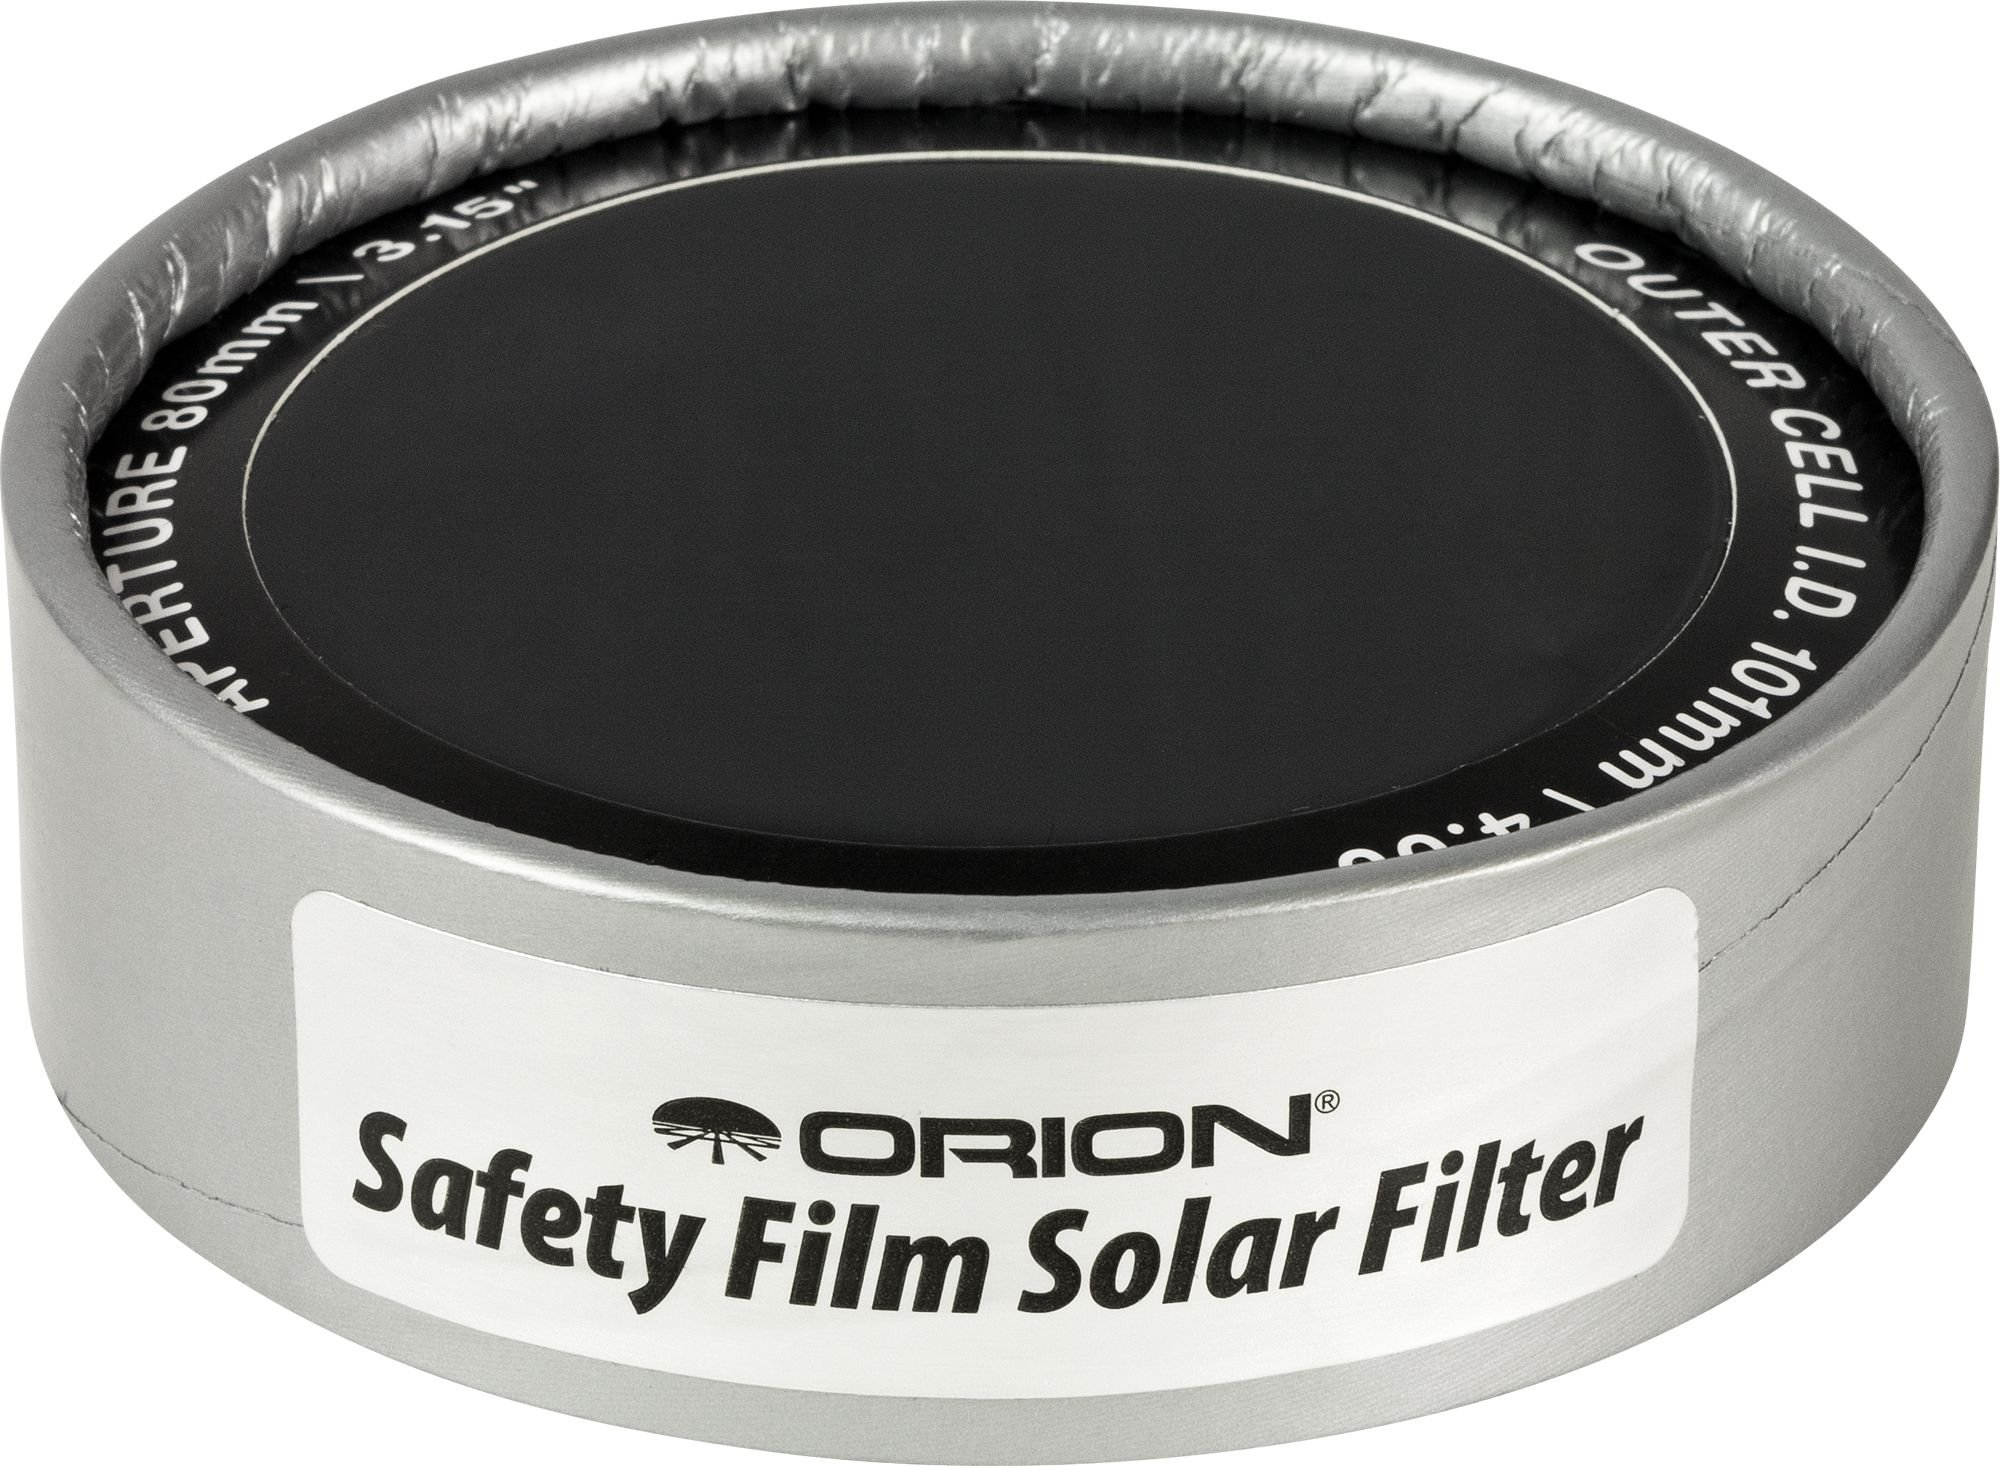 Orion 7785 4.00-Inch ID E-Series Safety Film Solar Filter